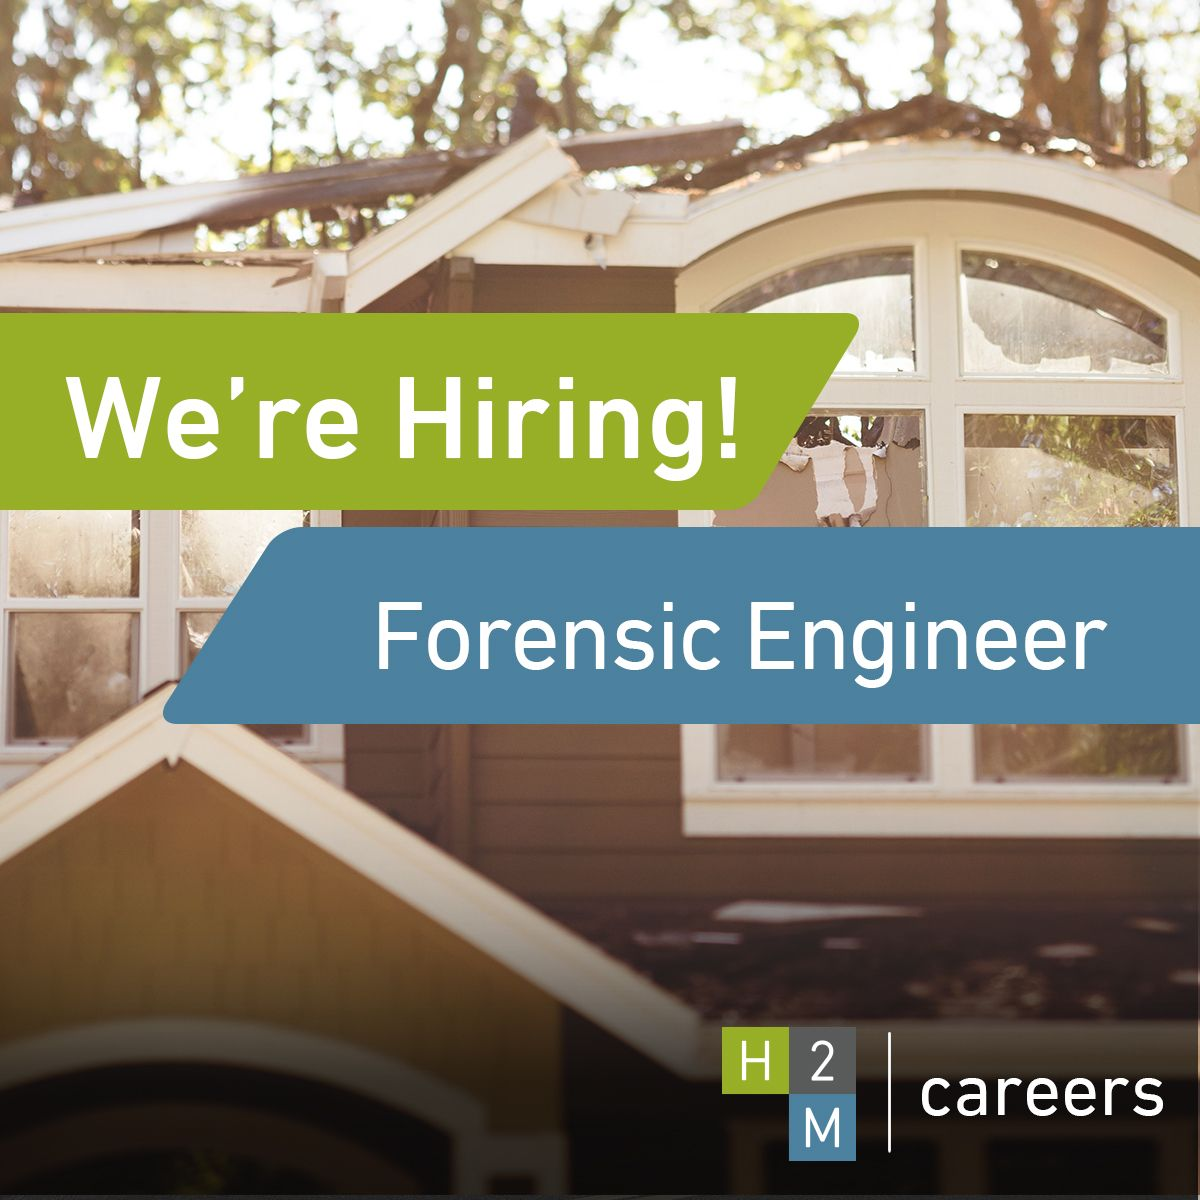 We Re Hiring A Forensic Engineer With 5 Years Of Experience In Melville Ny Job Description The Ideal Candidate Will Building Systems Roof Damage Homeowner